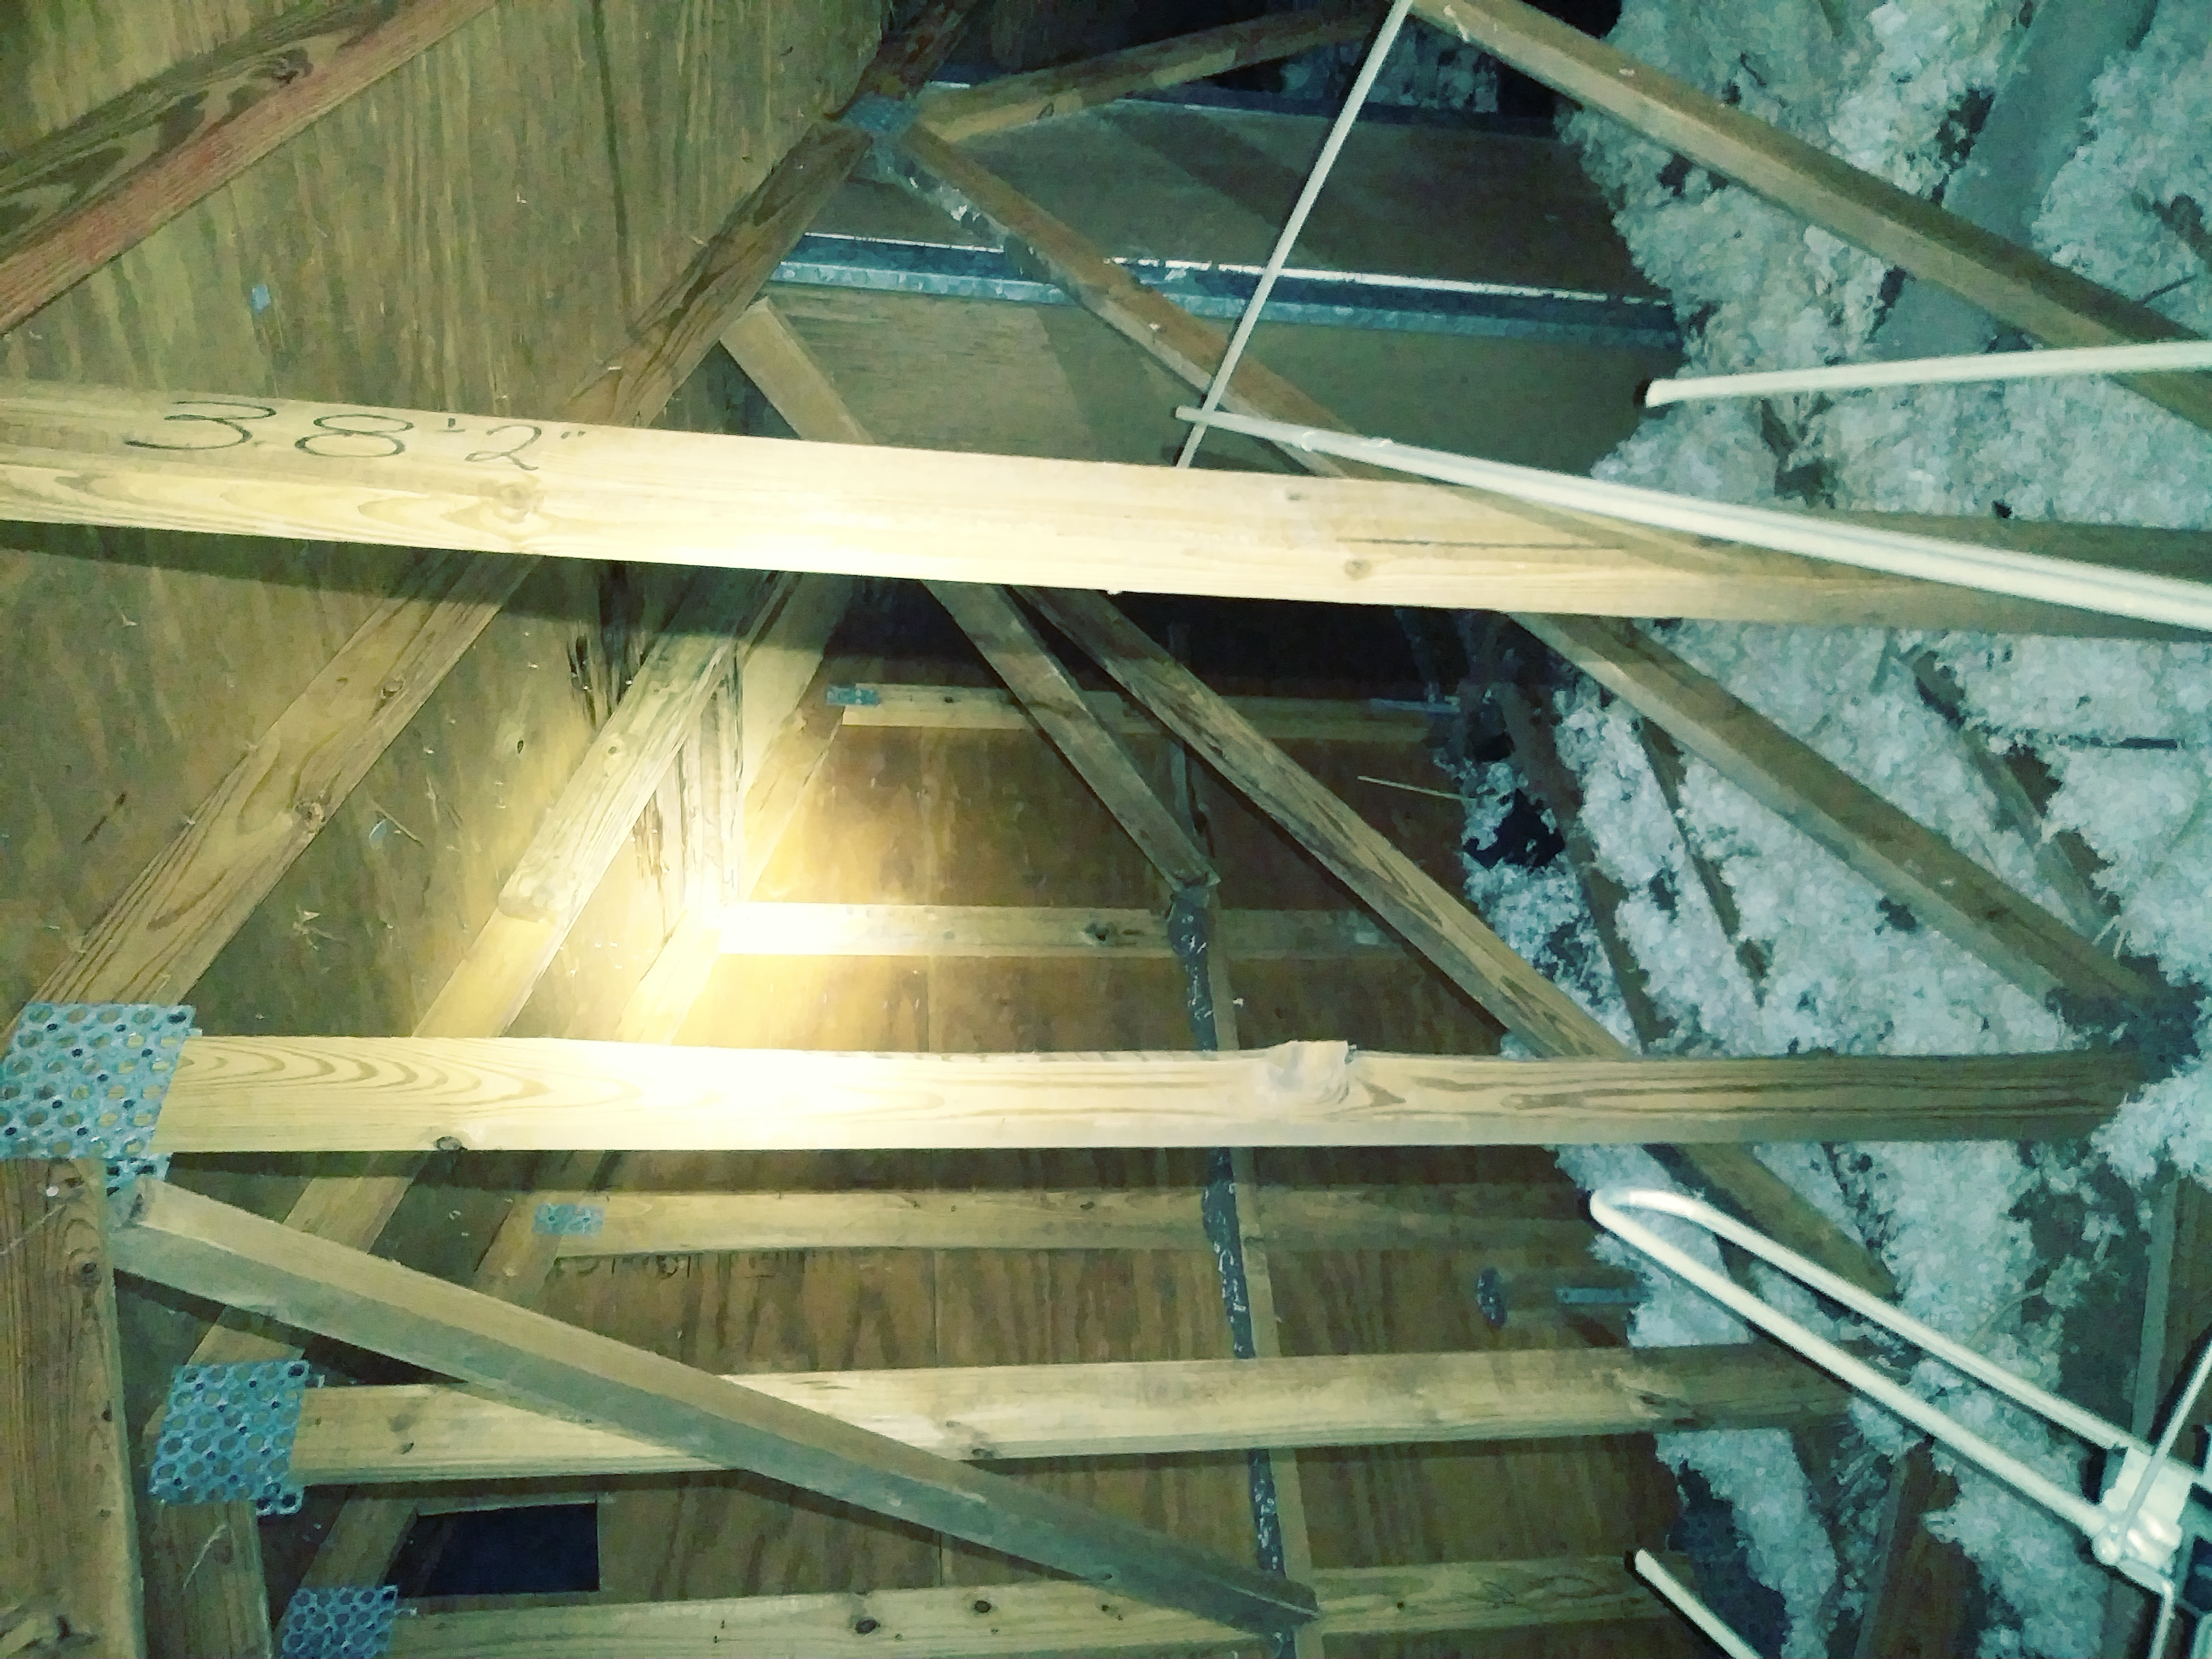 How to Inspect the Attic, Insulation, Ventilation and Interior Course